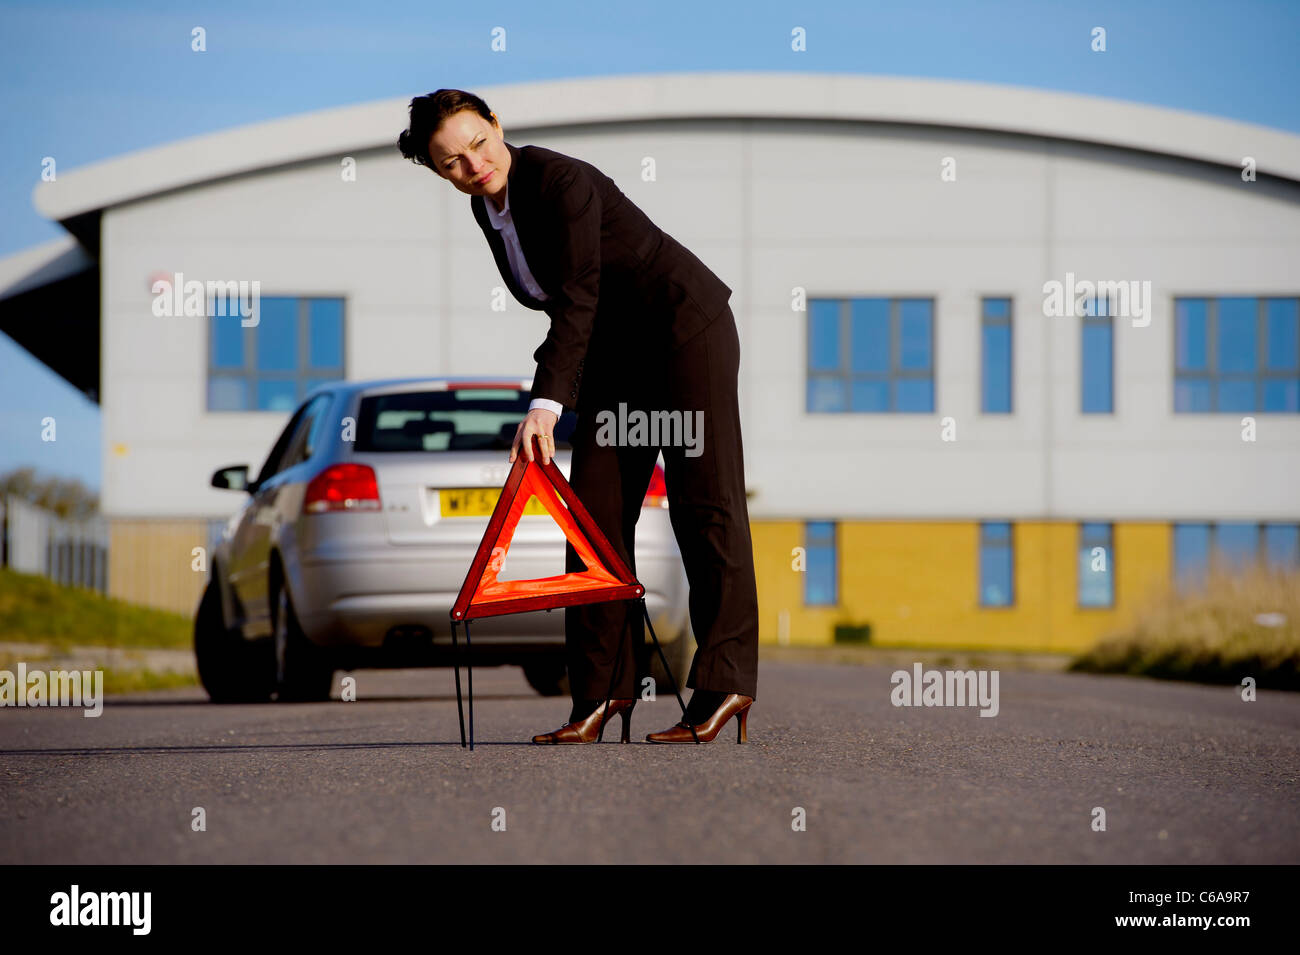 Red Triangle Stock Photos & Red Triangle Stock Images - Alamy